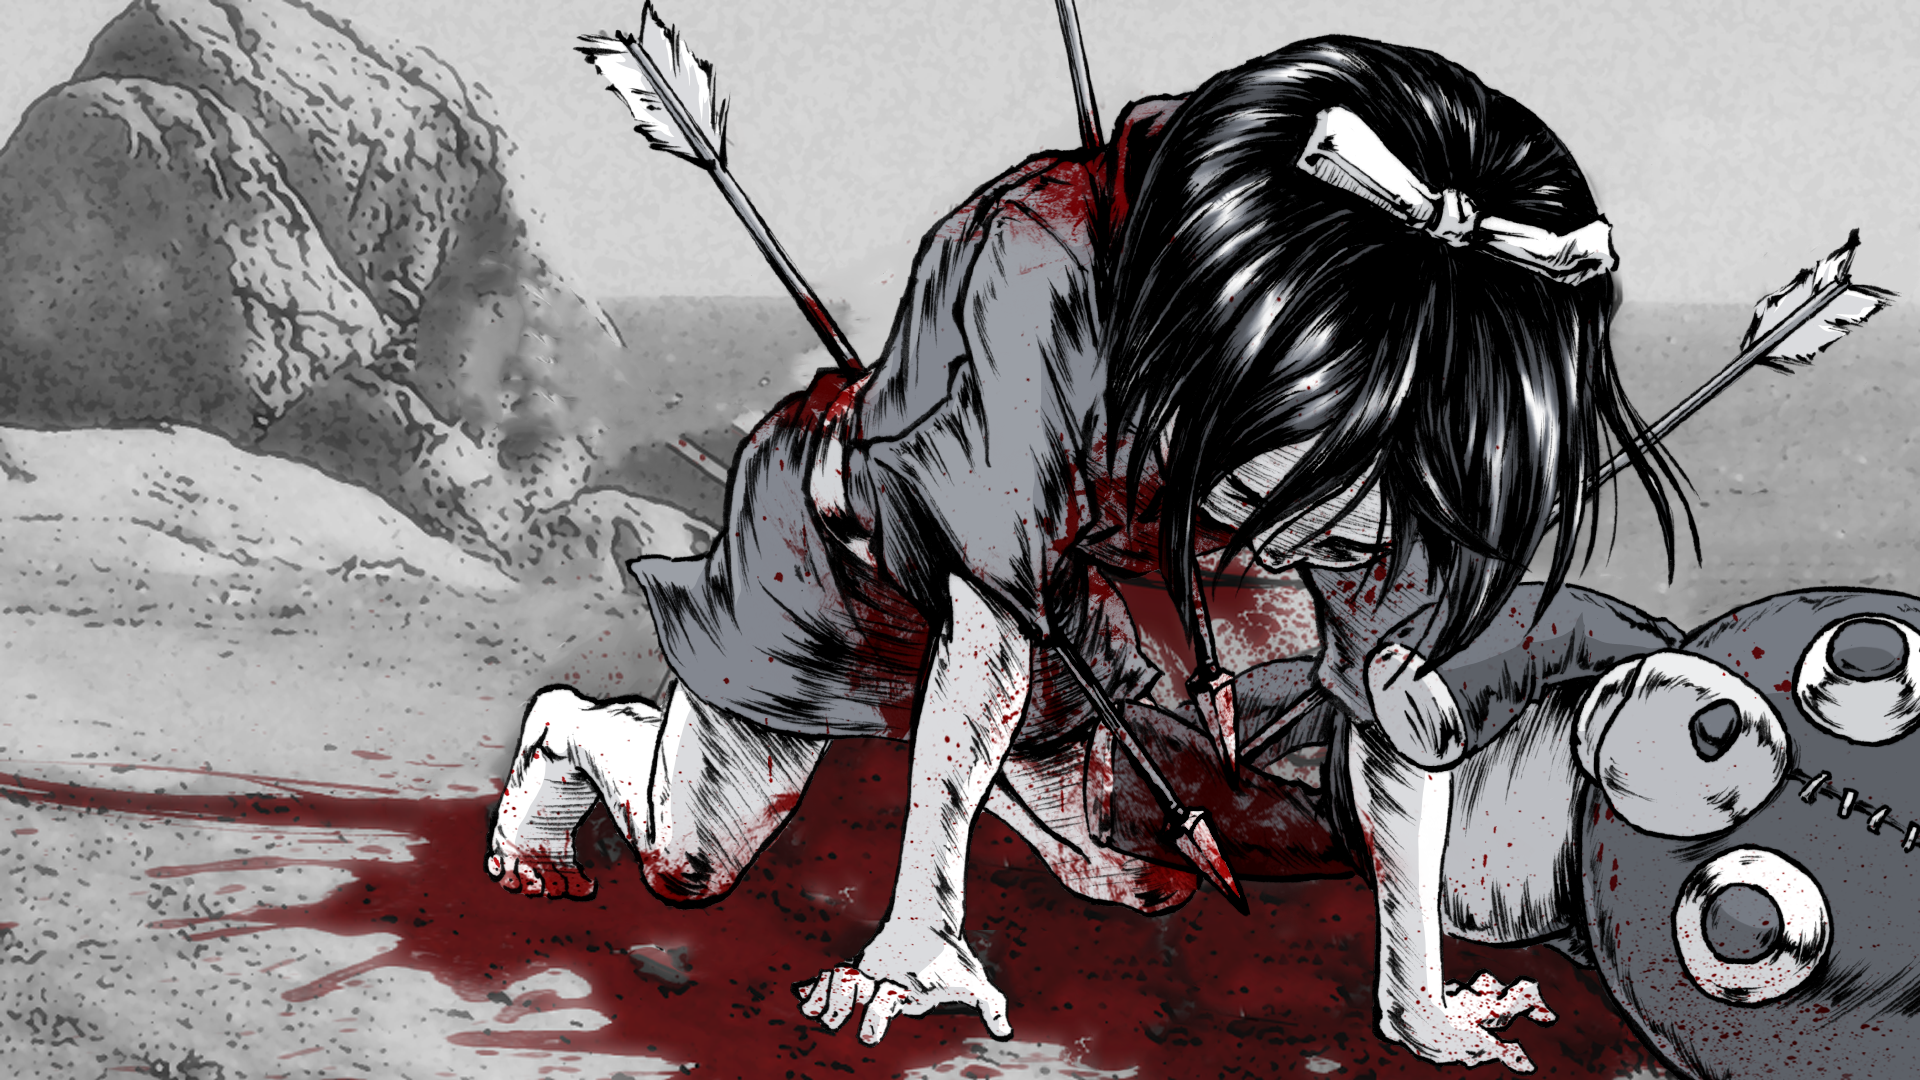 afro samurai  to 2007's manga soundtrack afro samurai, resurrection finds rza  and  watch him play himself: i'm looking for some get back/ i'm quick to.